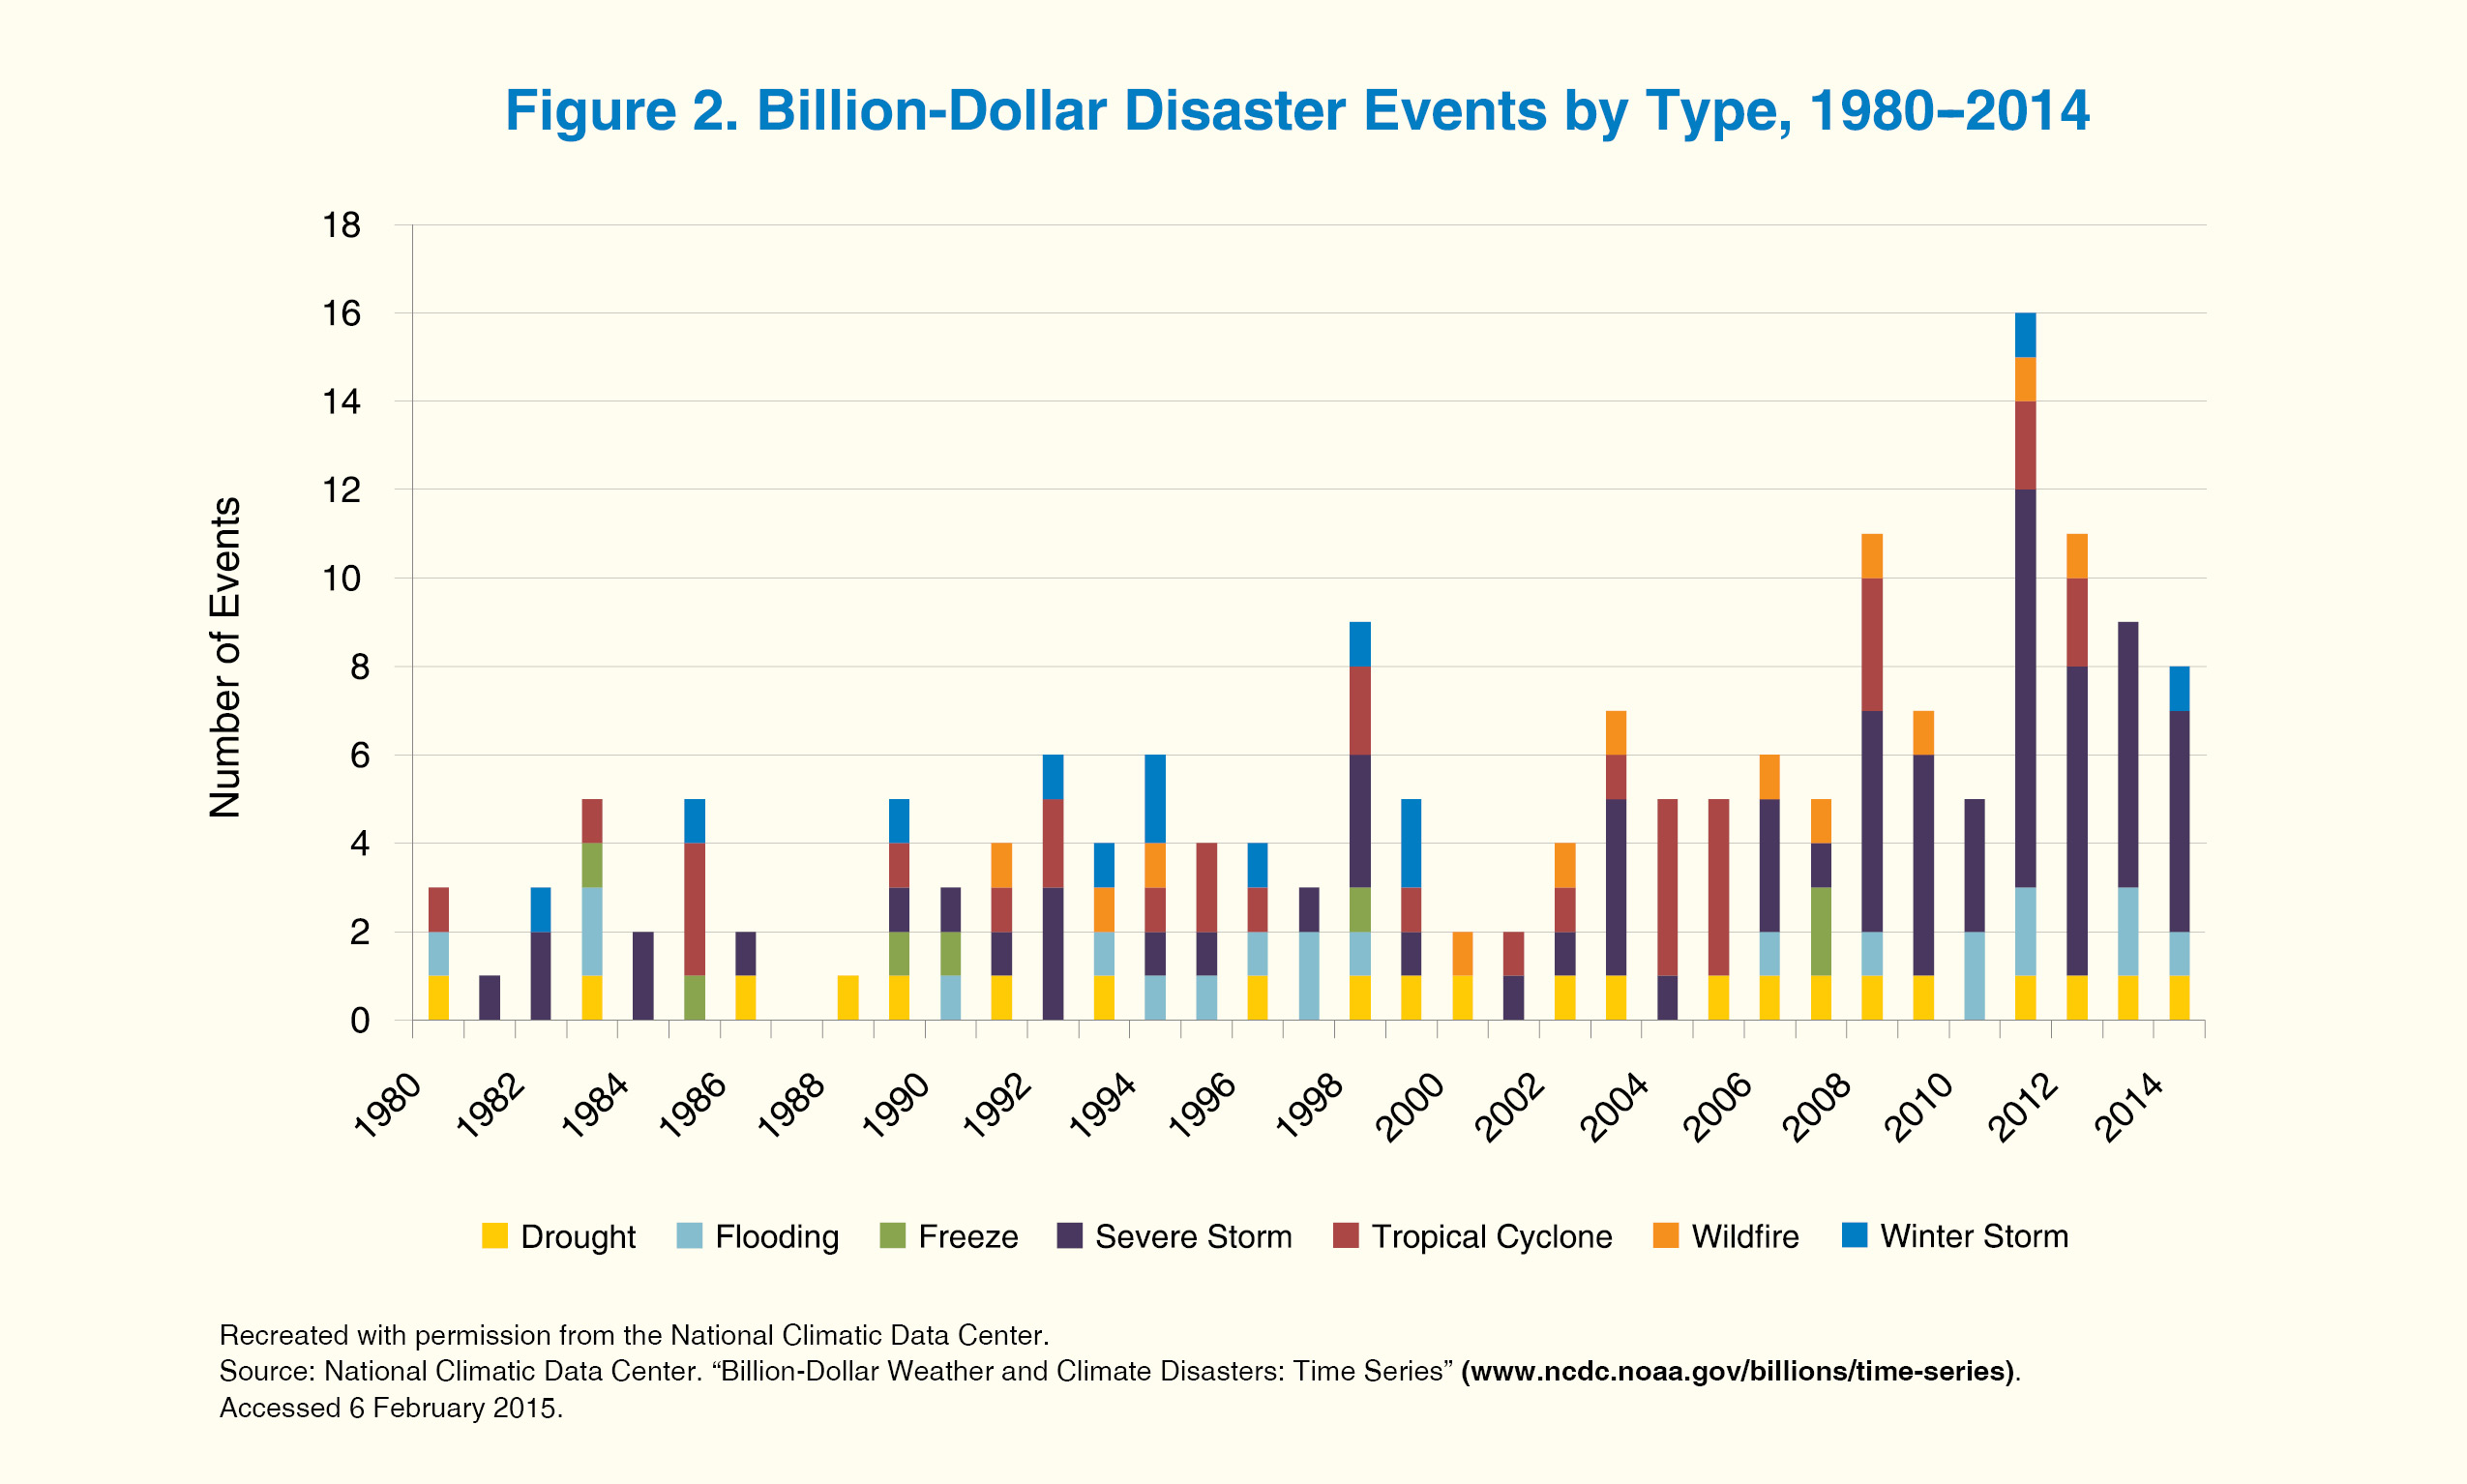 A bar chart showing number of billion dollar disaster events by type from 1980 to 2014.